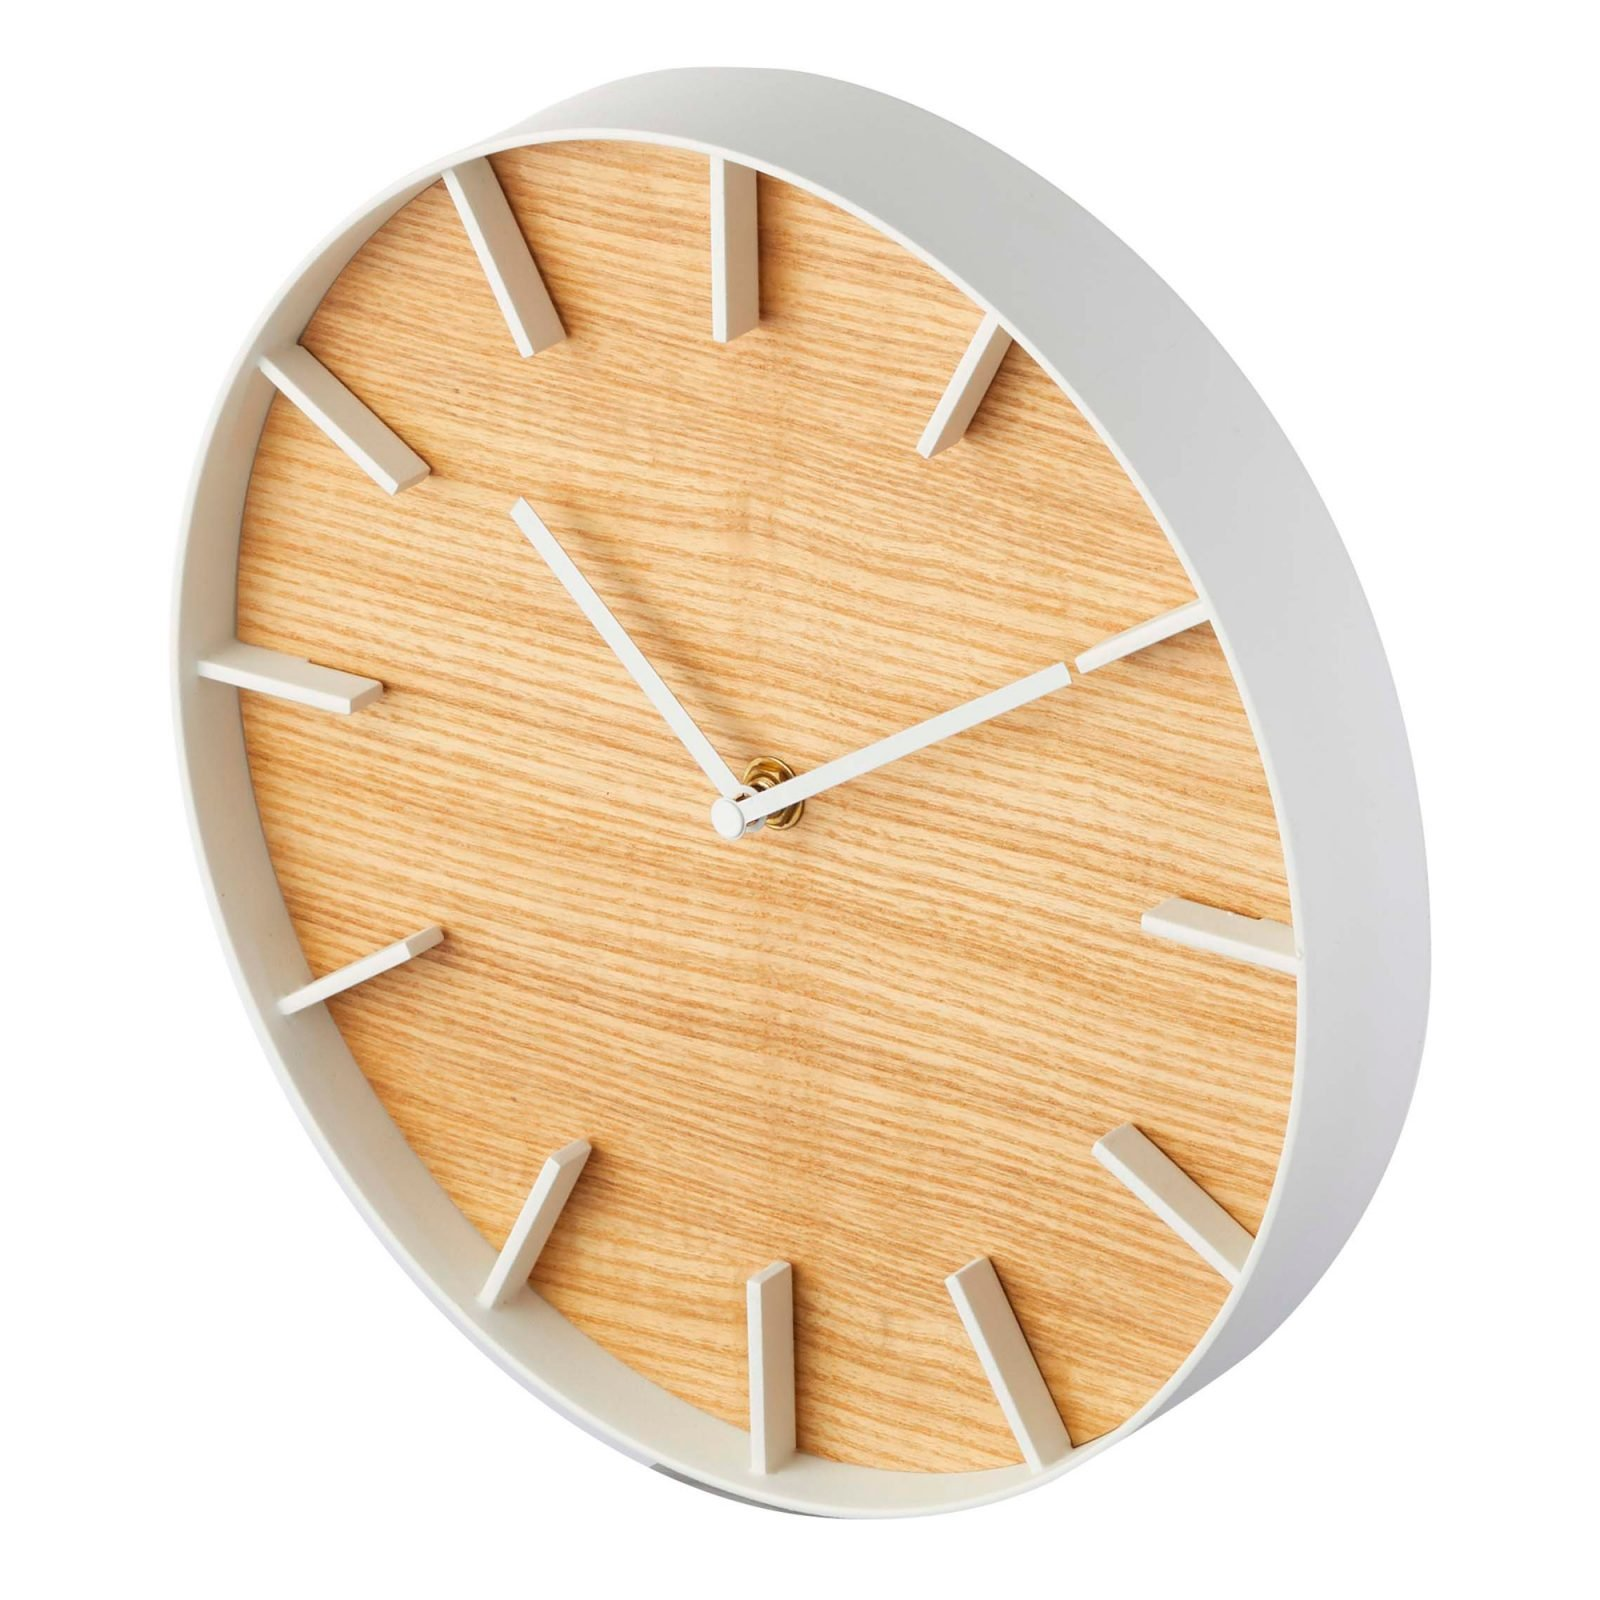 rin-wall-clock-natural-2